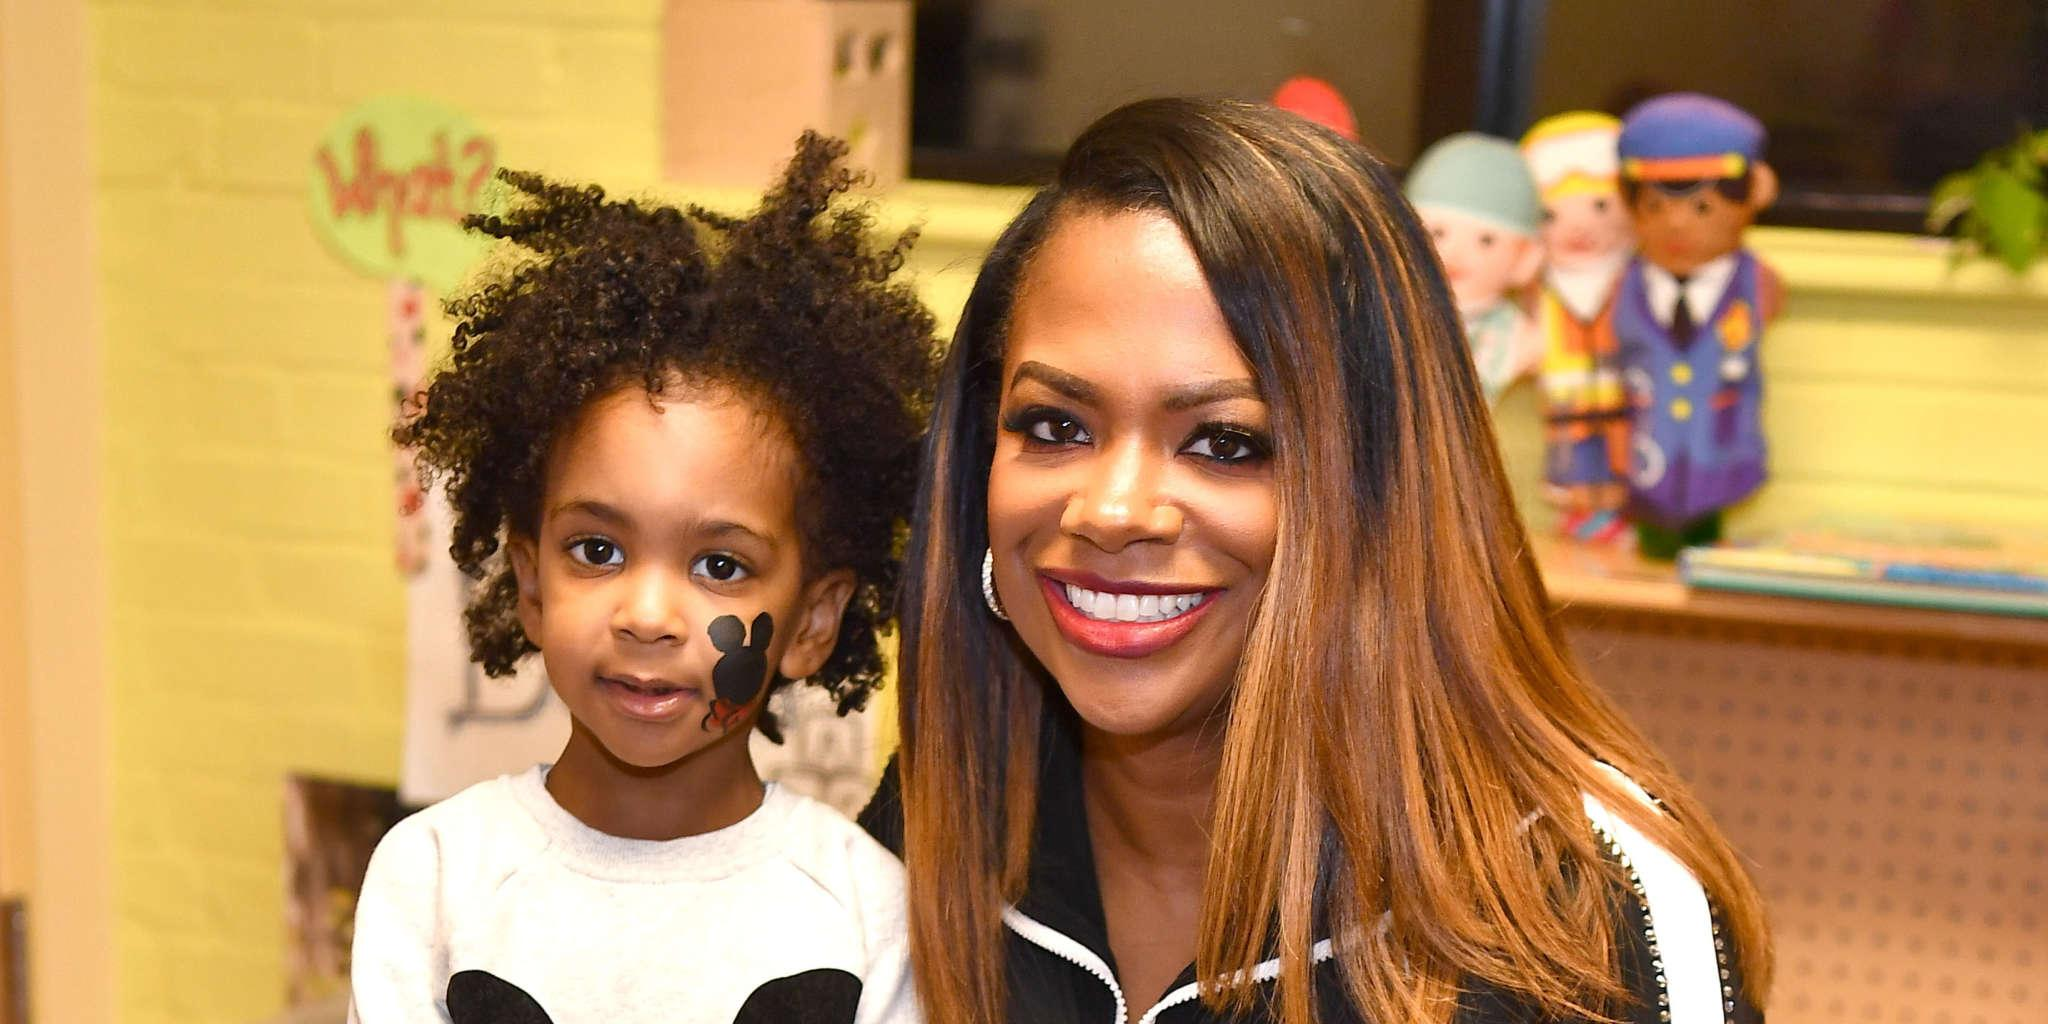 Kandi Burruss Shows Fans Ace Wells Tucker's Latest Reason For Joy - See The Video